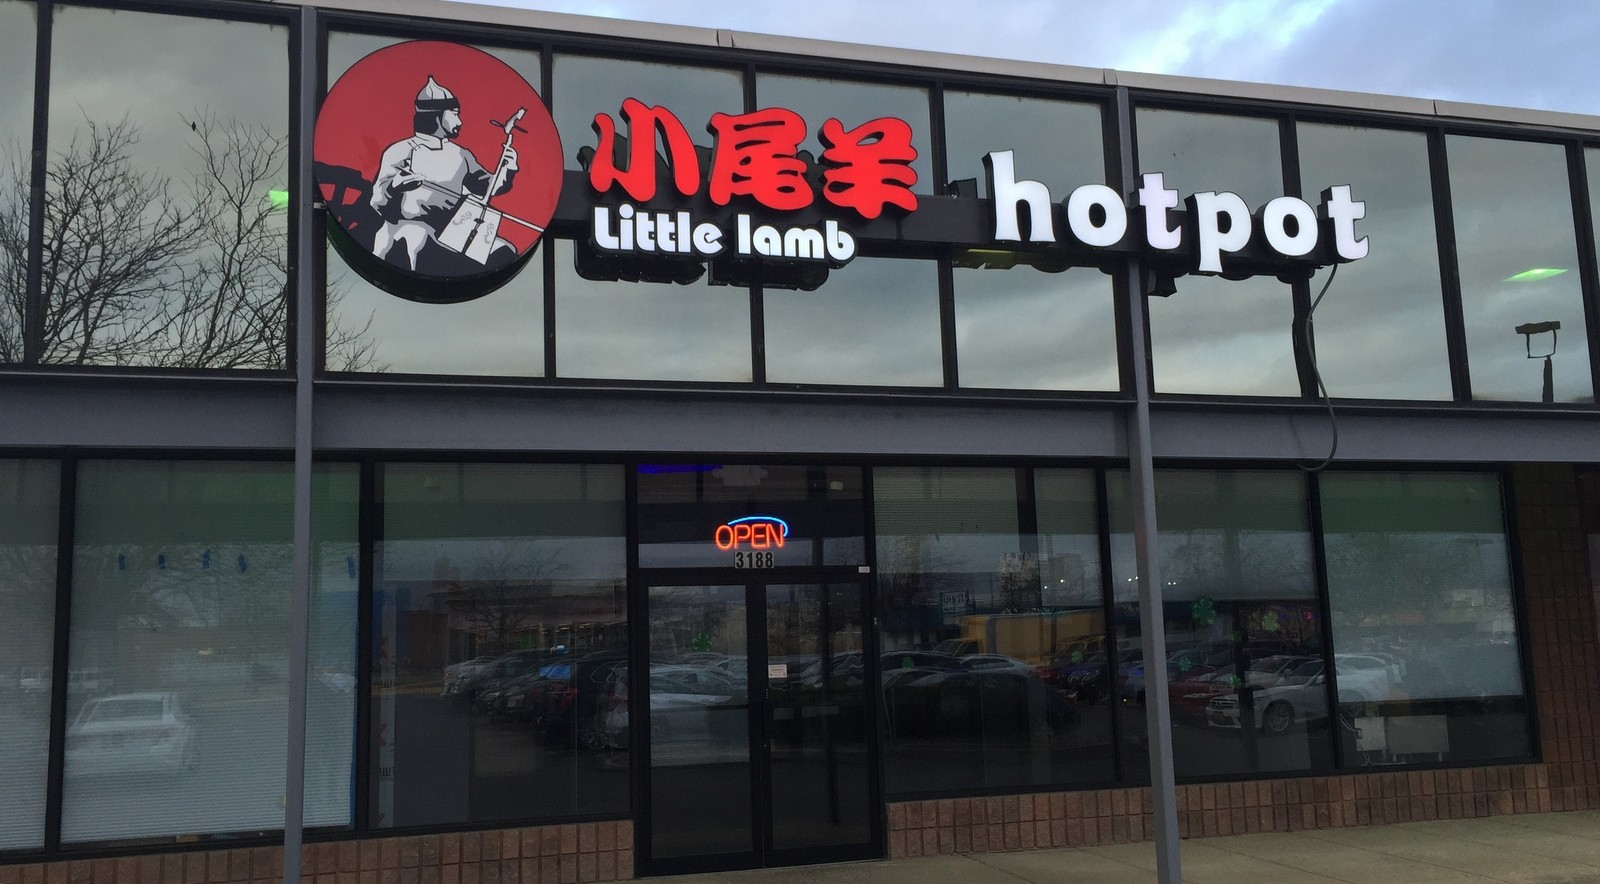 Restaurant specializing in hotpot, a Chinese favorite, opens in Amherst. (Andrew Galarneau/Buffalo News)